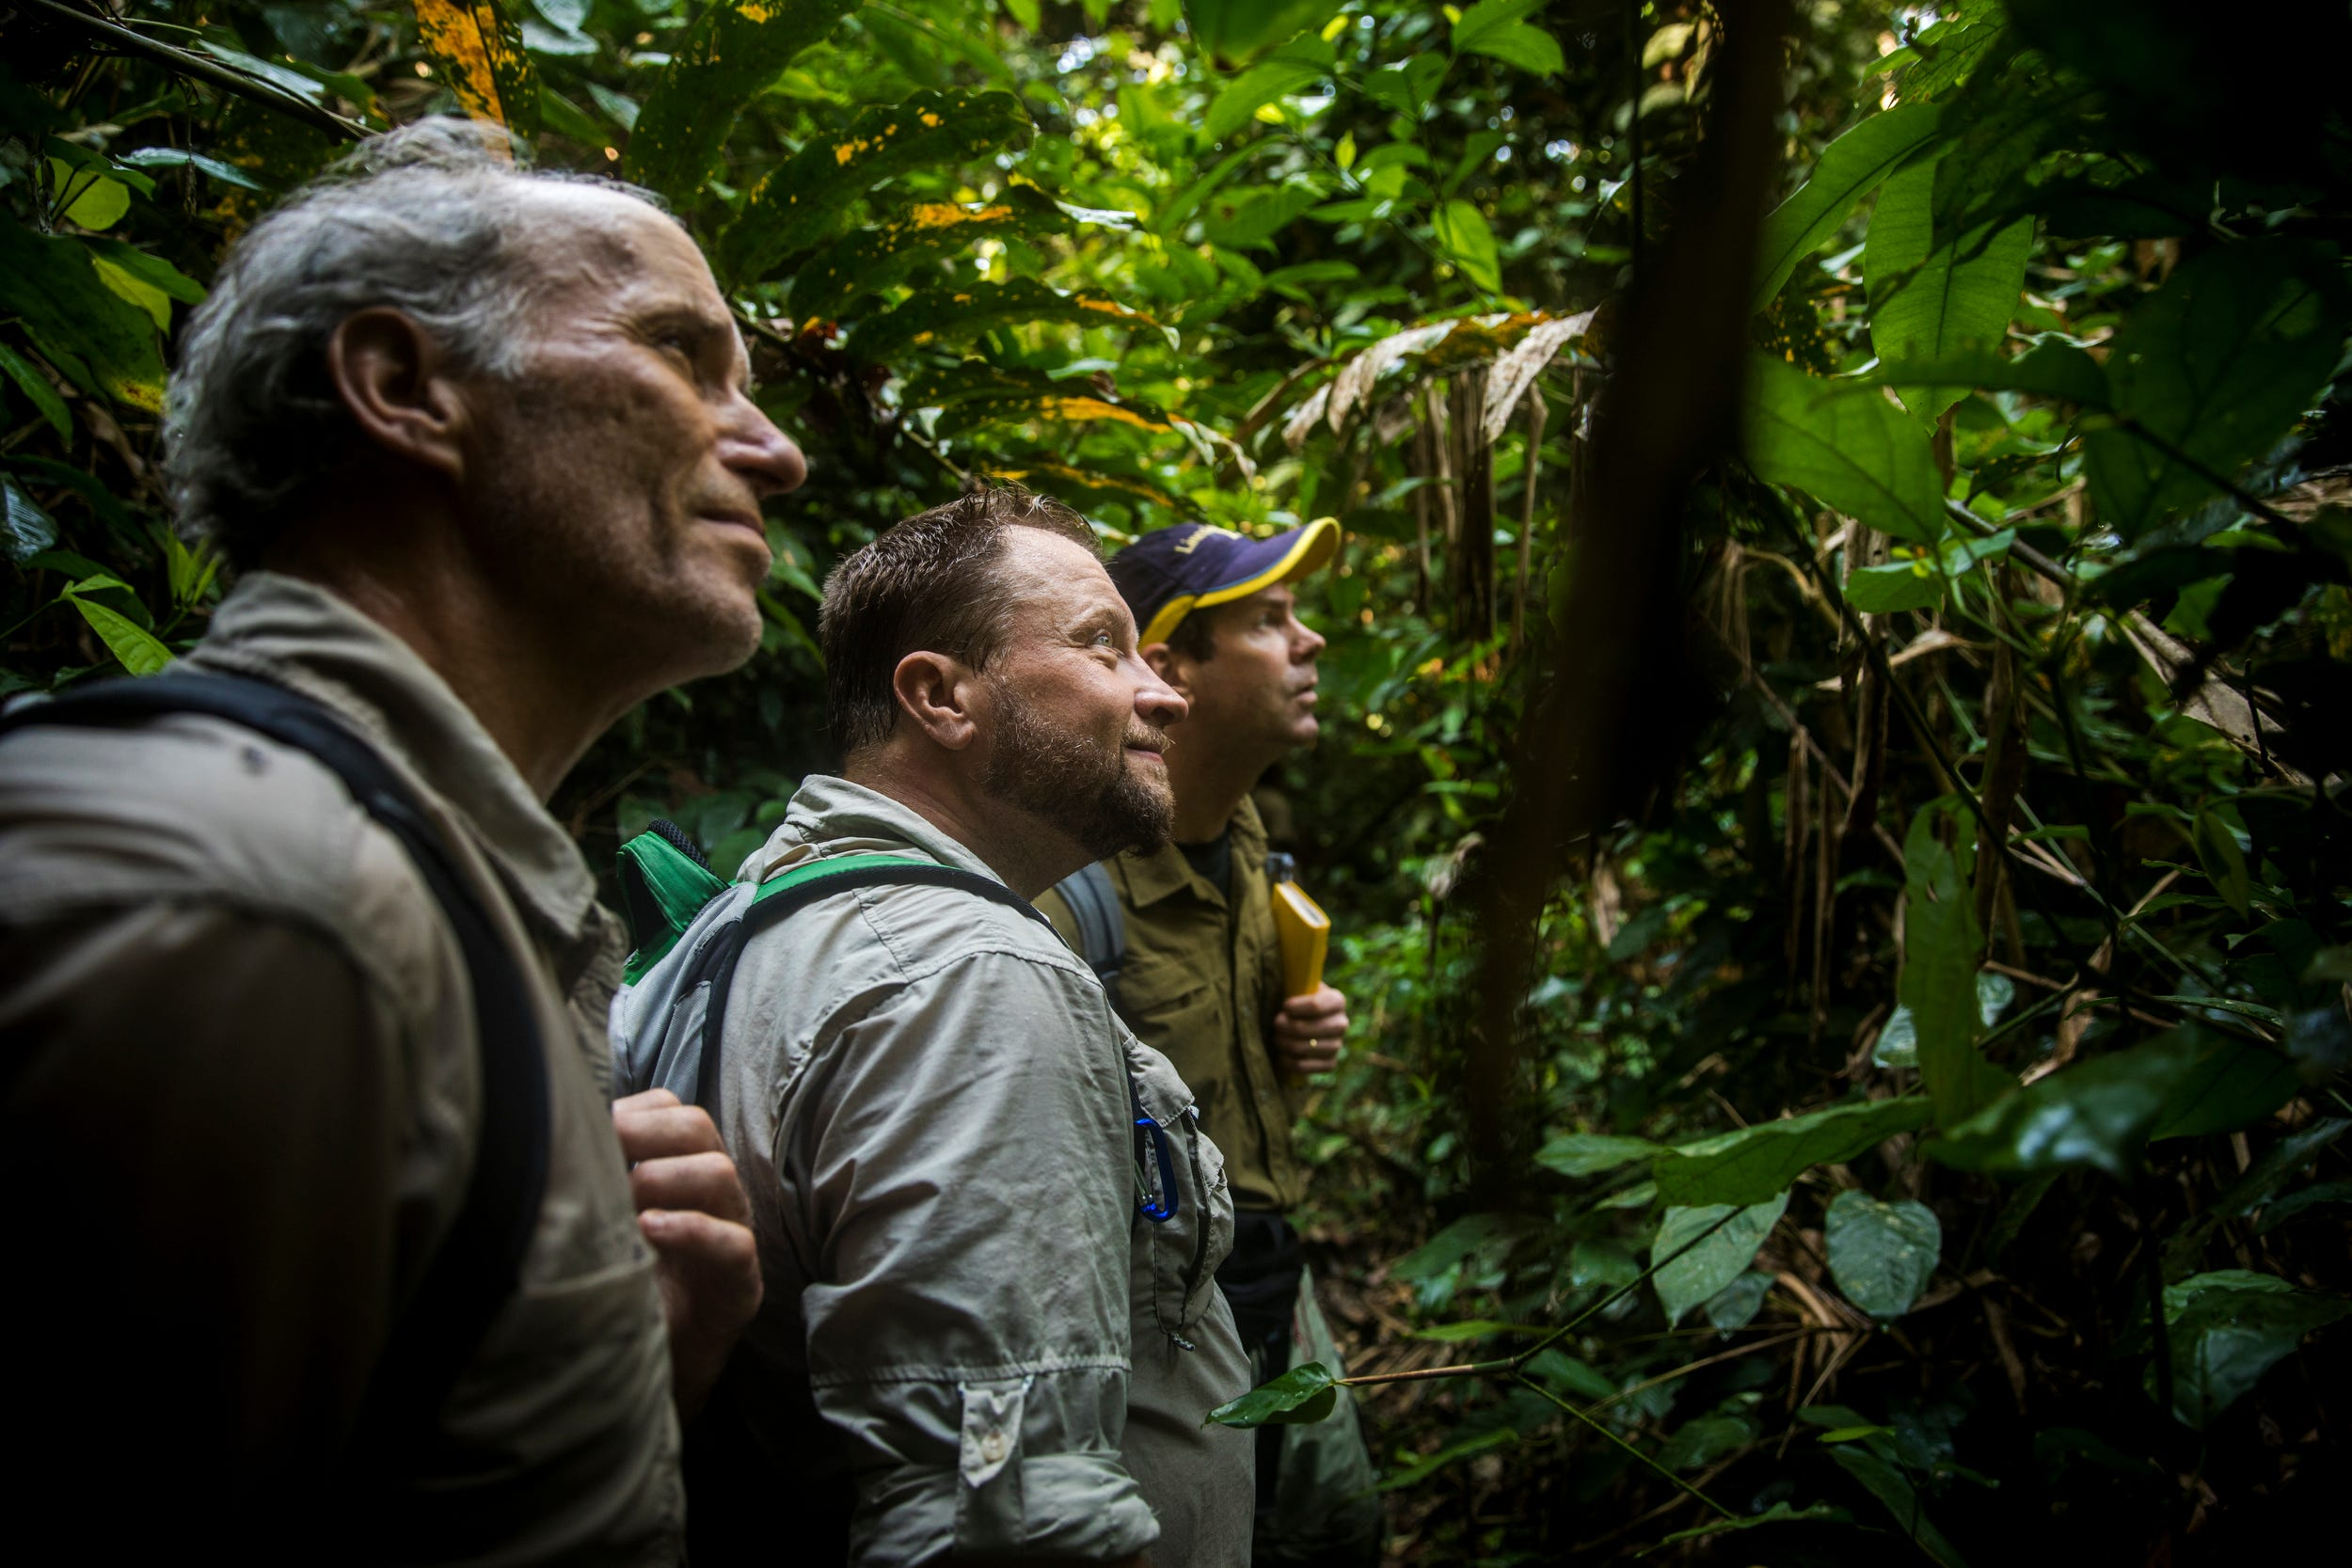 Cincinnati Zoo's Thane Maynard and Ron Evans watch a group of chimpanzees in a tree with Dave Morgan, a research fellow at the Lincoln Park Zoo, inside the Nouabalé-Ndoki National Park.